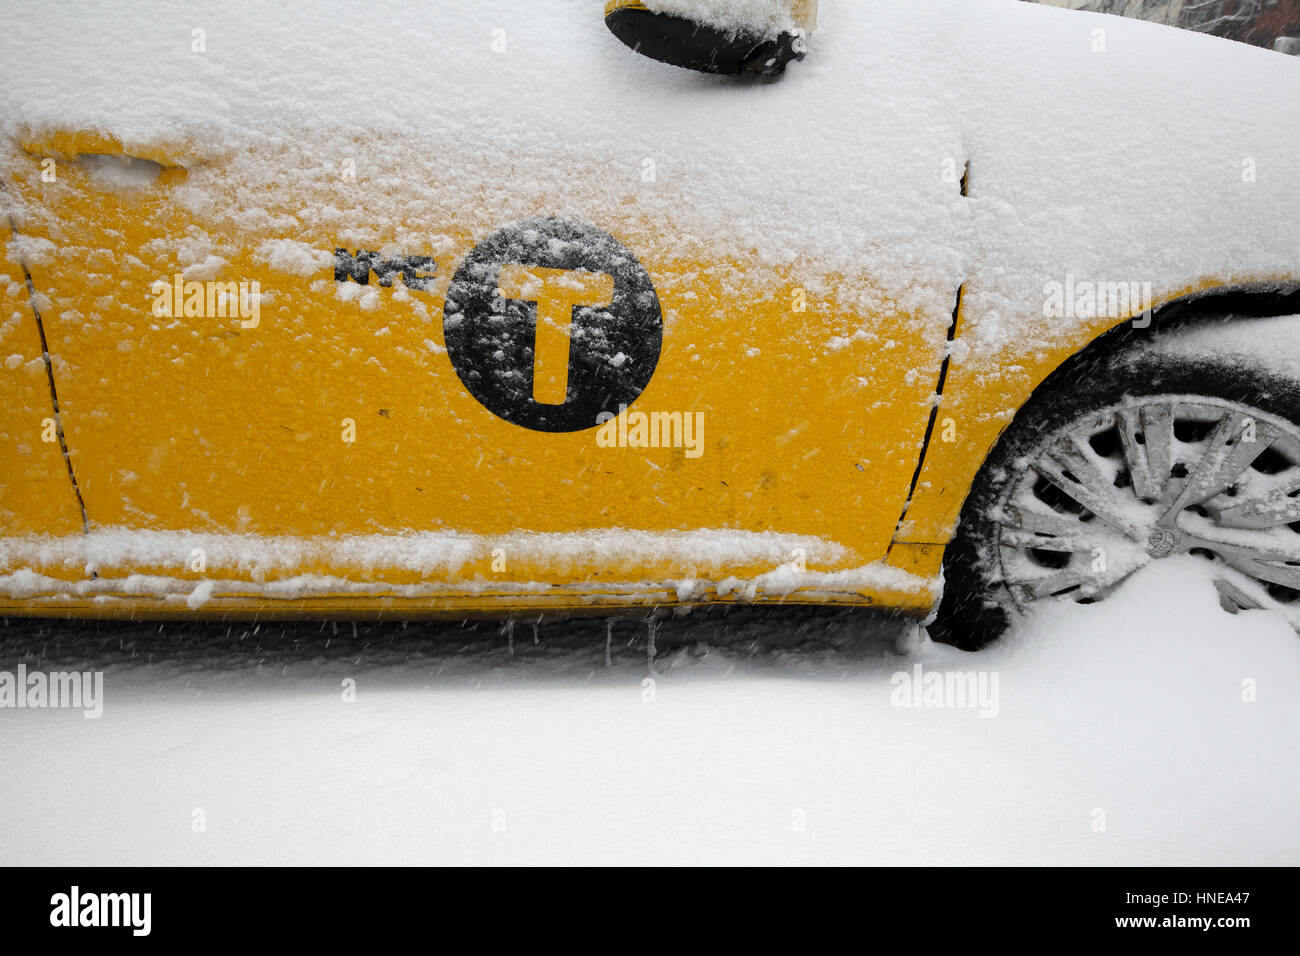 snowed in New York taxi cab - Stock Image